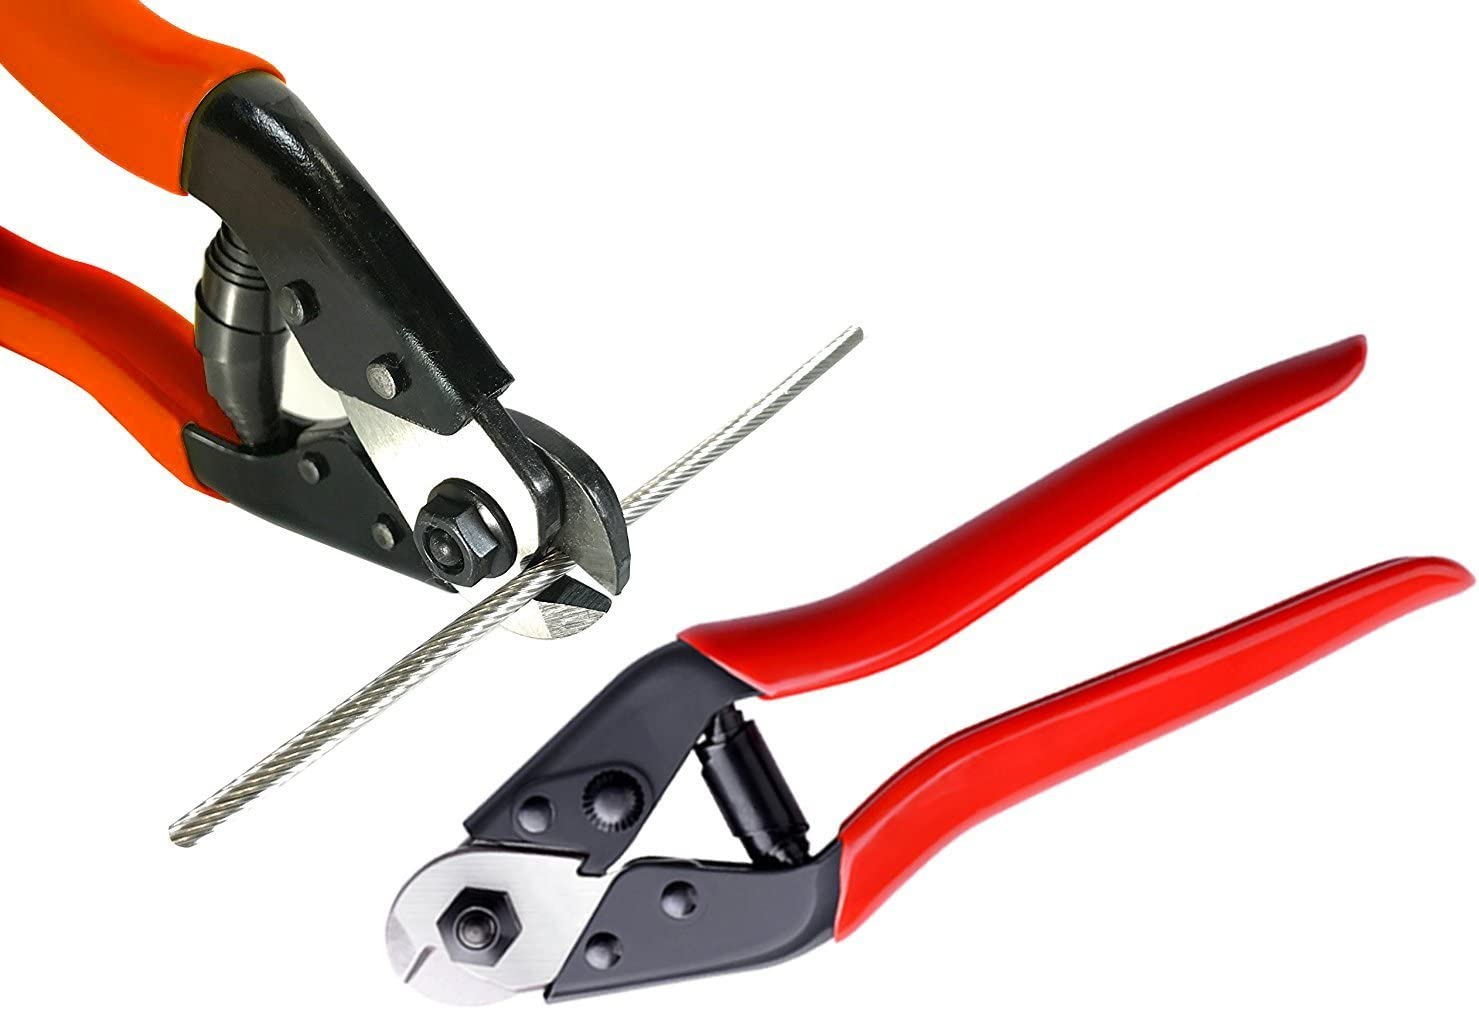 Stainless Steel Wire Rope Aircraft Bicycle Cable Cutter,Up to 5//32